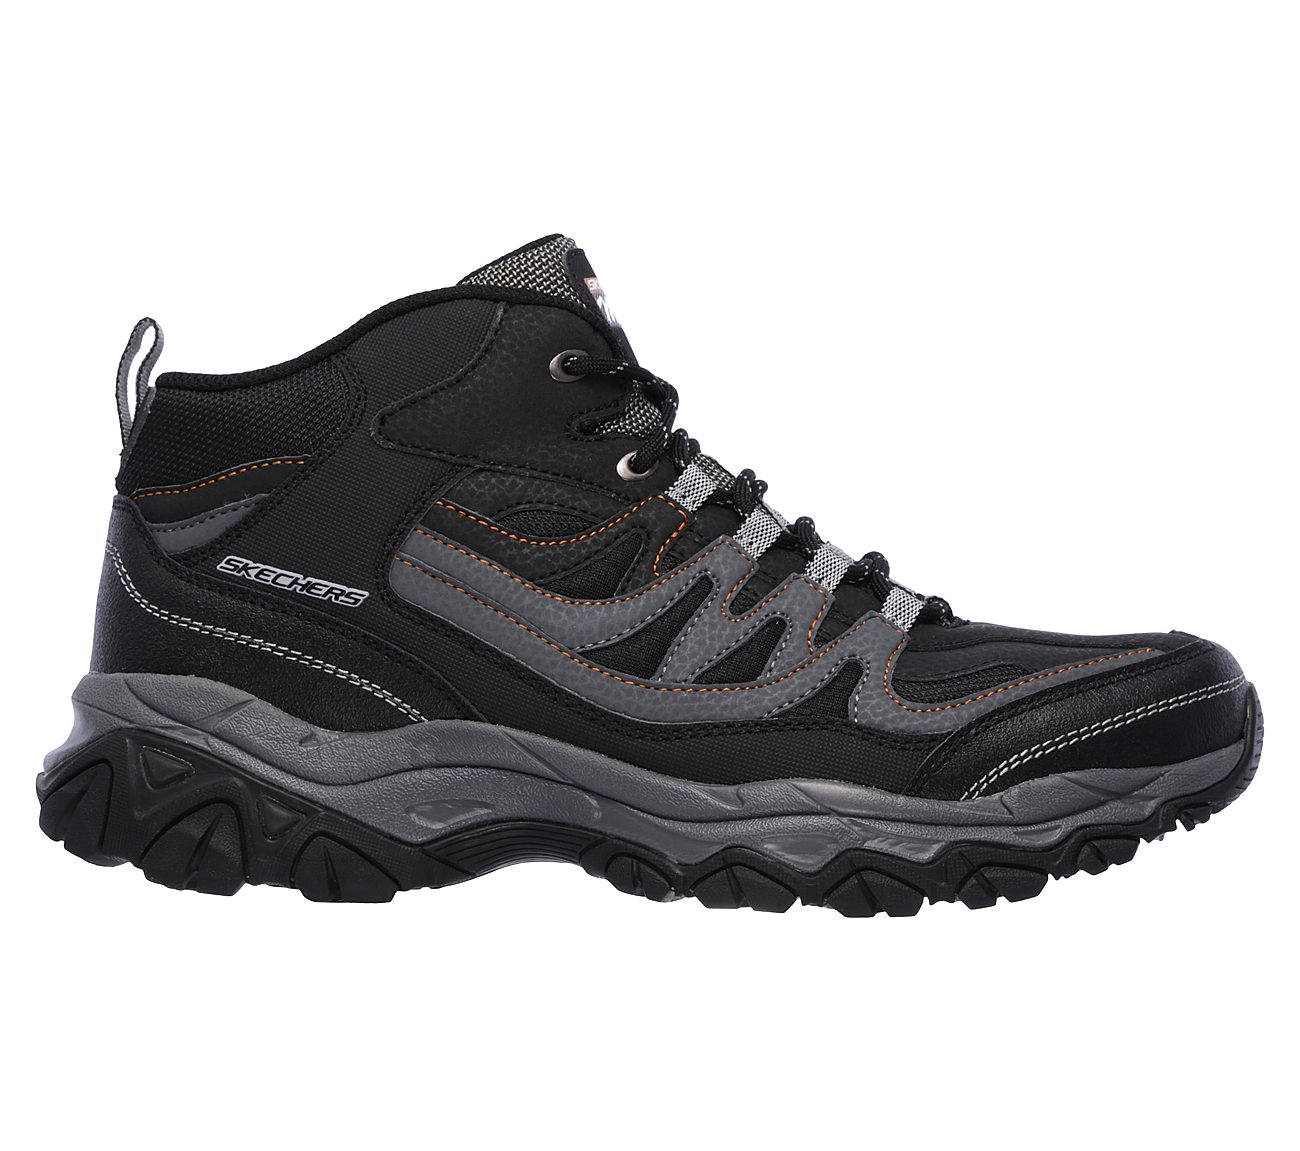 outlet real SKECHERS Men's After Burn Memory Fit – Geardo Sneakers sale tumblr cheap sale purchase 1sUYmXg